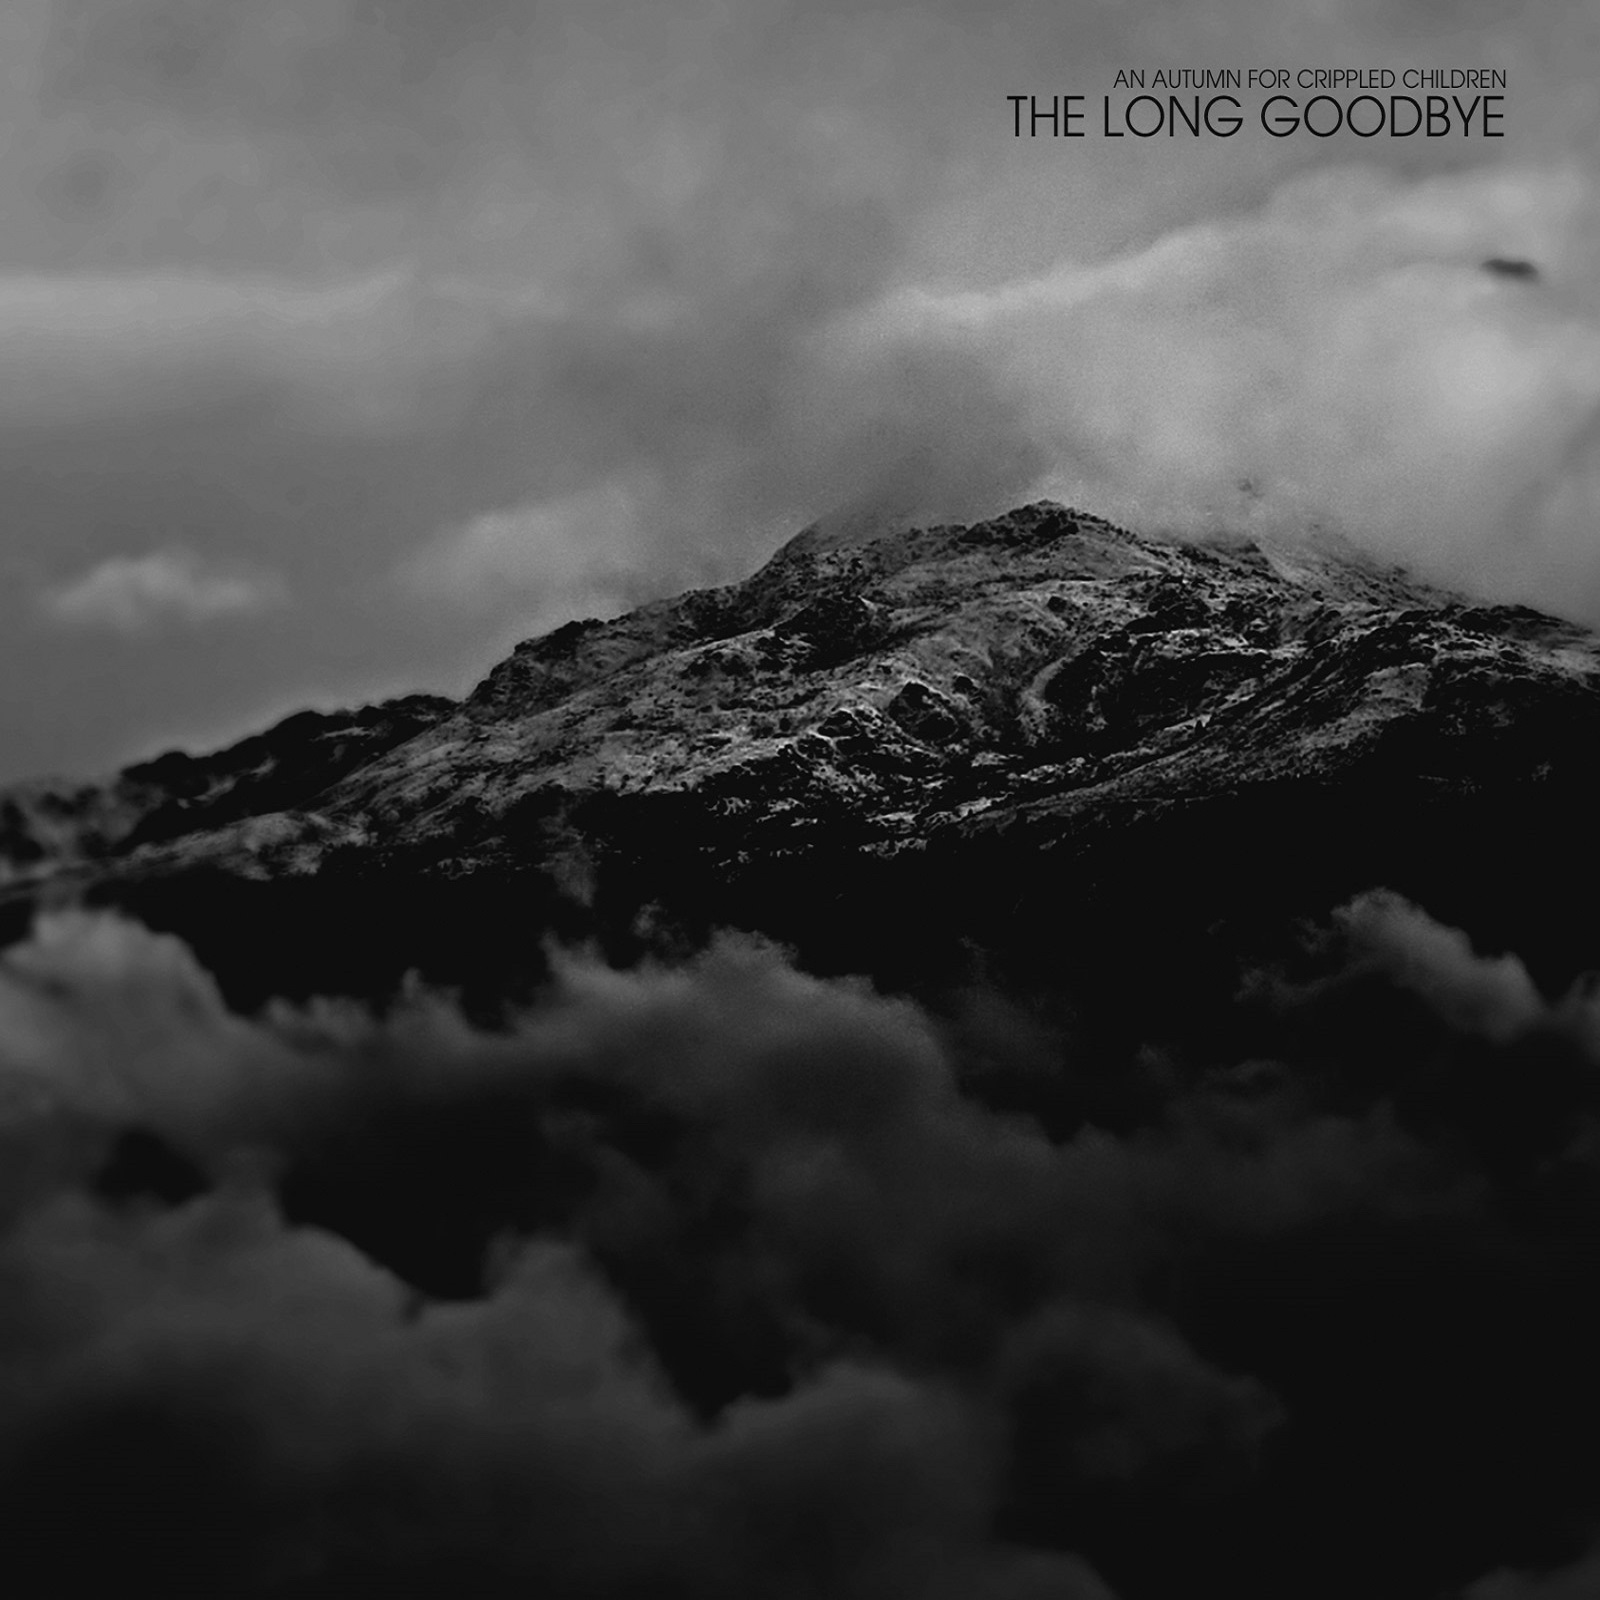 An Autumn for Crippled Children – The Long Goodbye Review